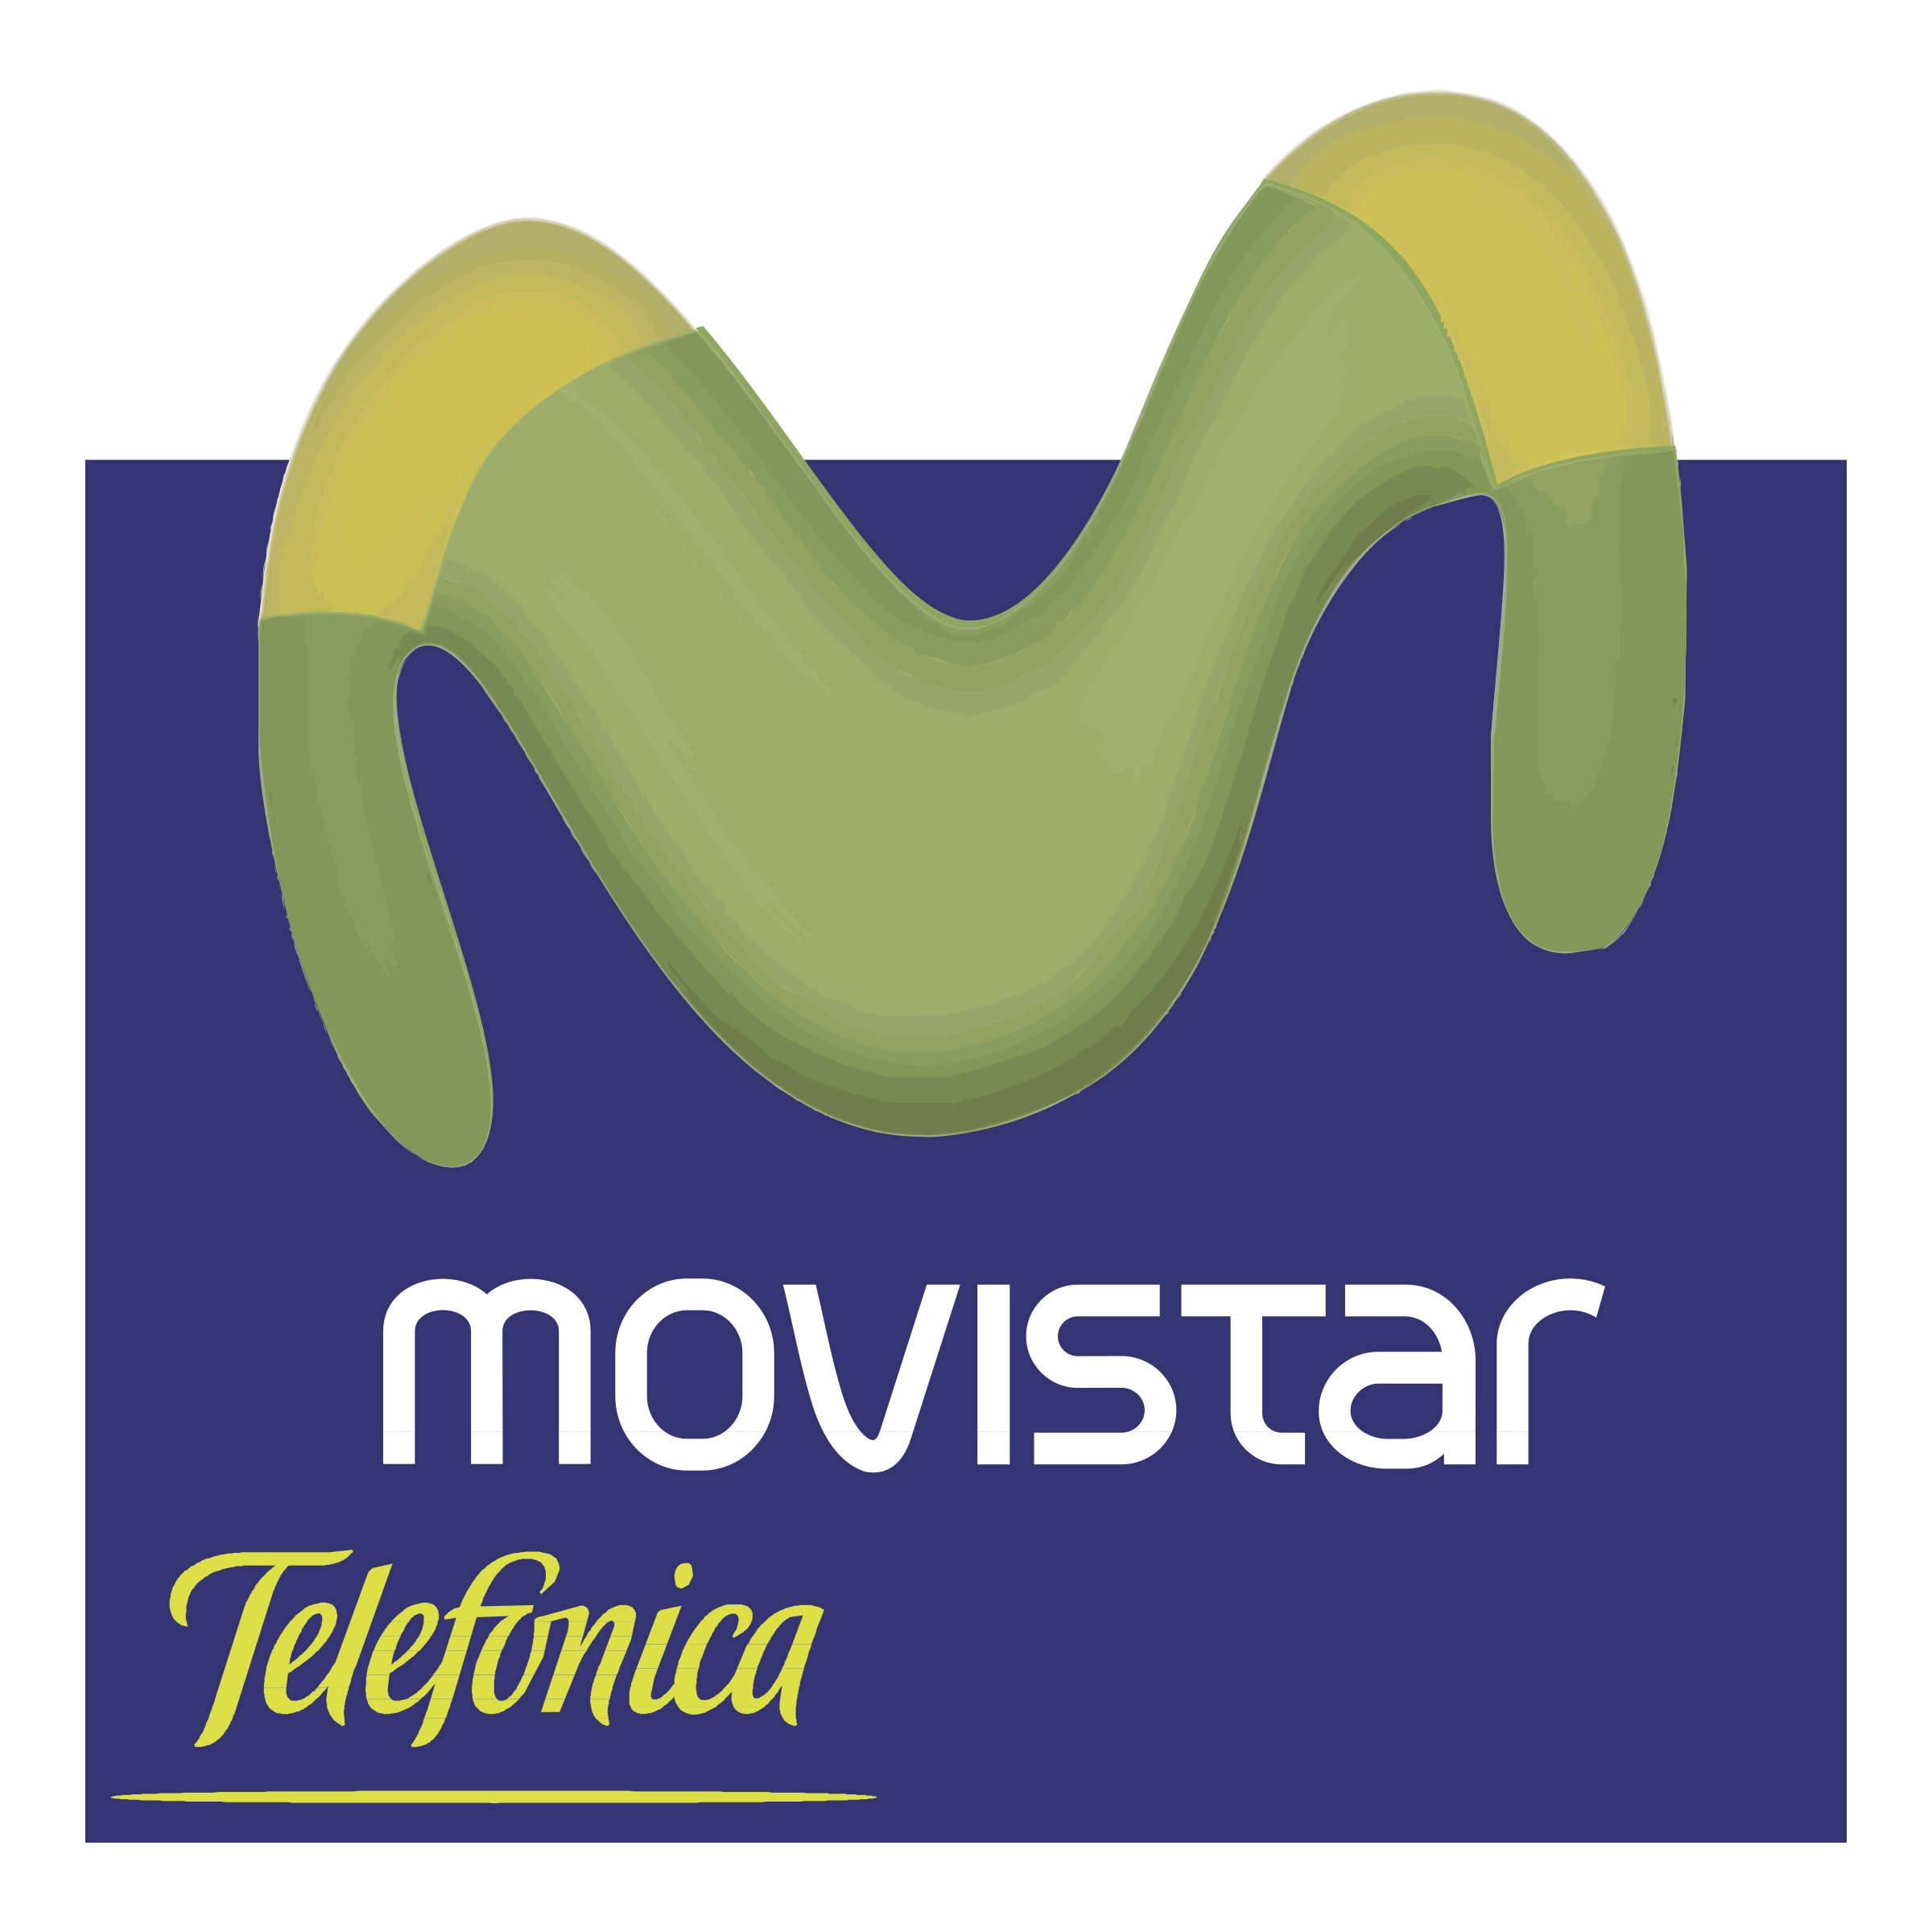 Movistar Logo PNG Transparent & SVG Vector.